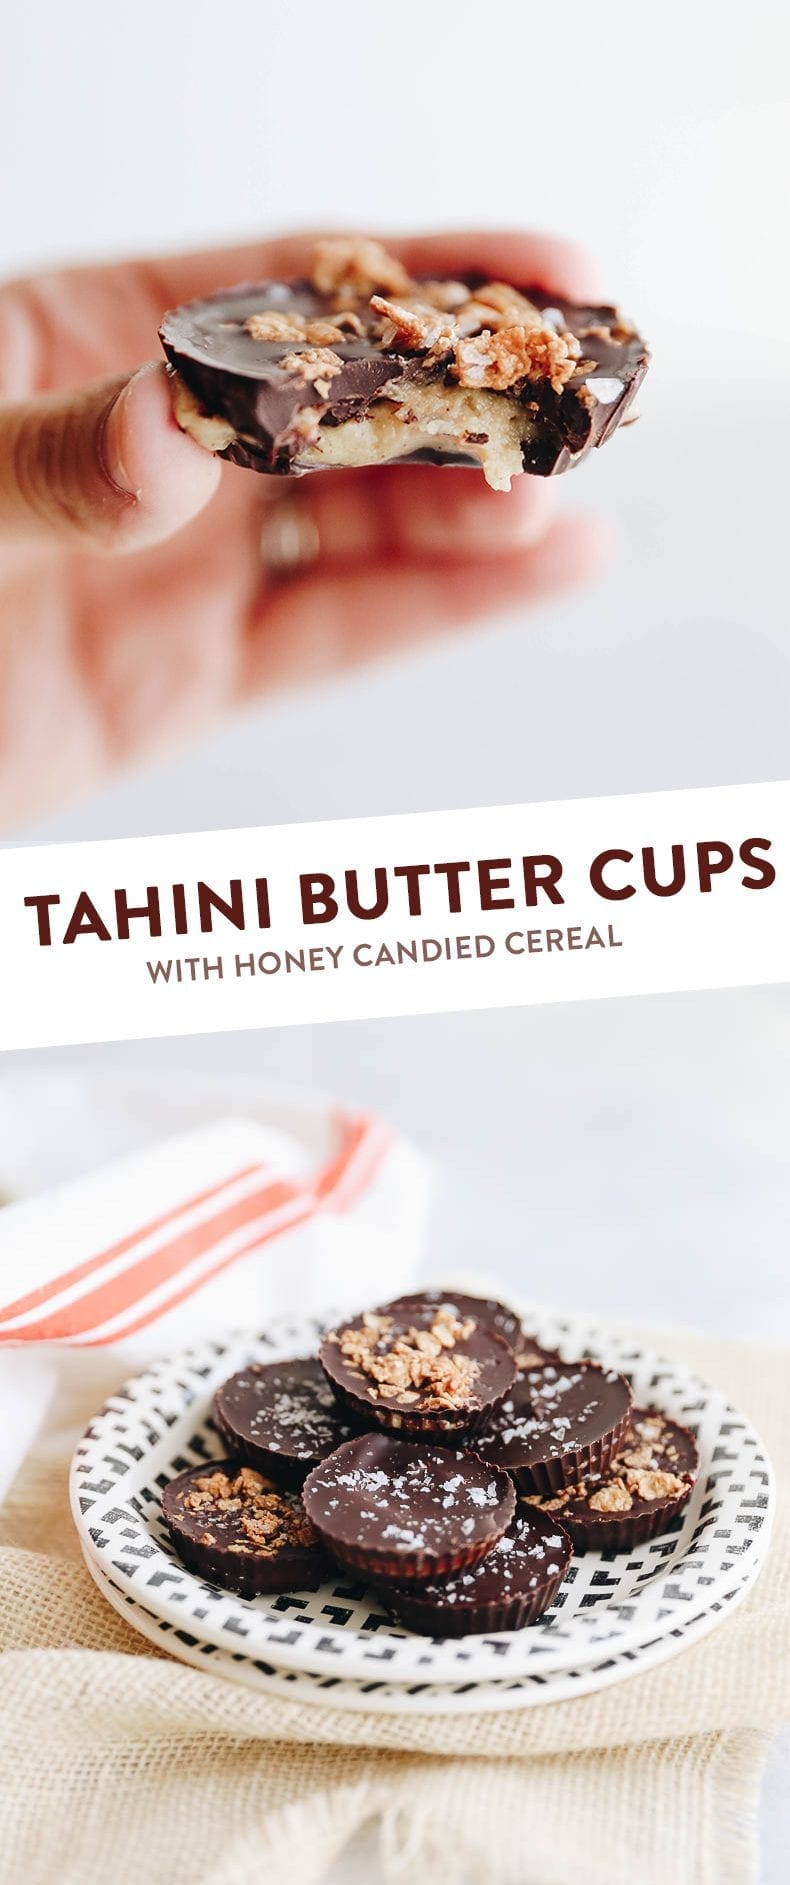 Switch up your Peanut Butter Cup game with these Tahini Butter Cups with Honey Candied Cereal sprinkled on top for a sweet treat with a twist. This delicious chocolate dessert recipe is sweetened entirely with honey for a healthier swap! #tahini #tahinibuttercups